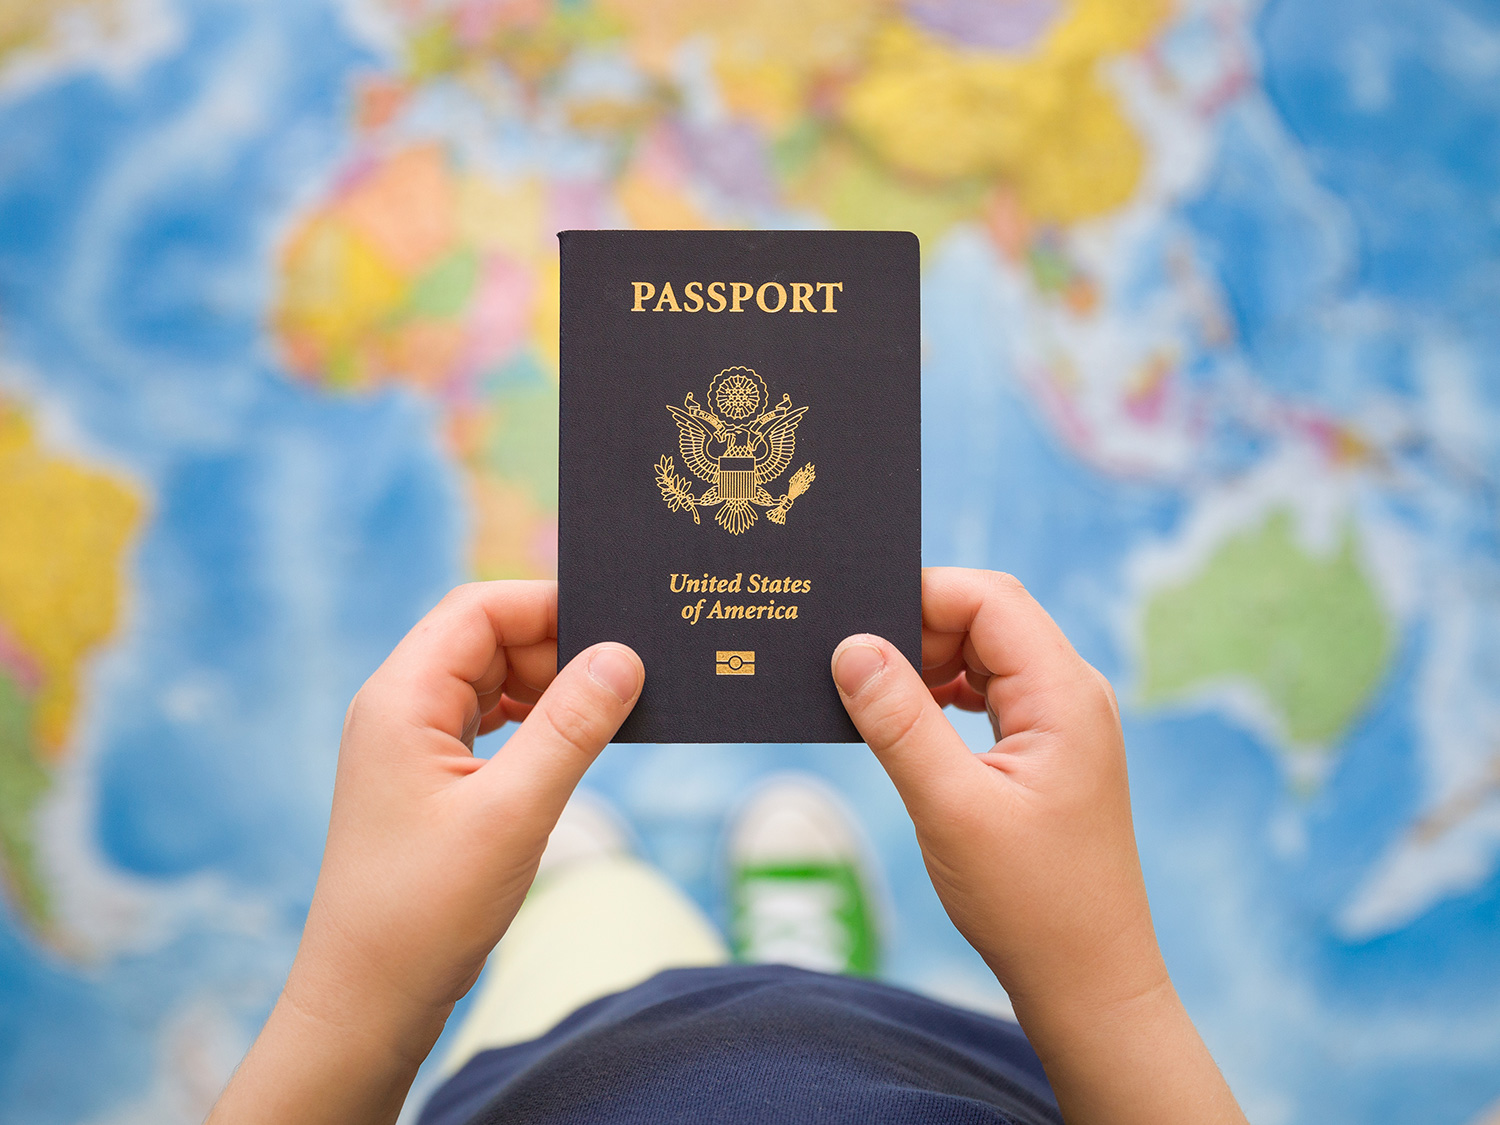 What you need to renew or apply for a passport